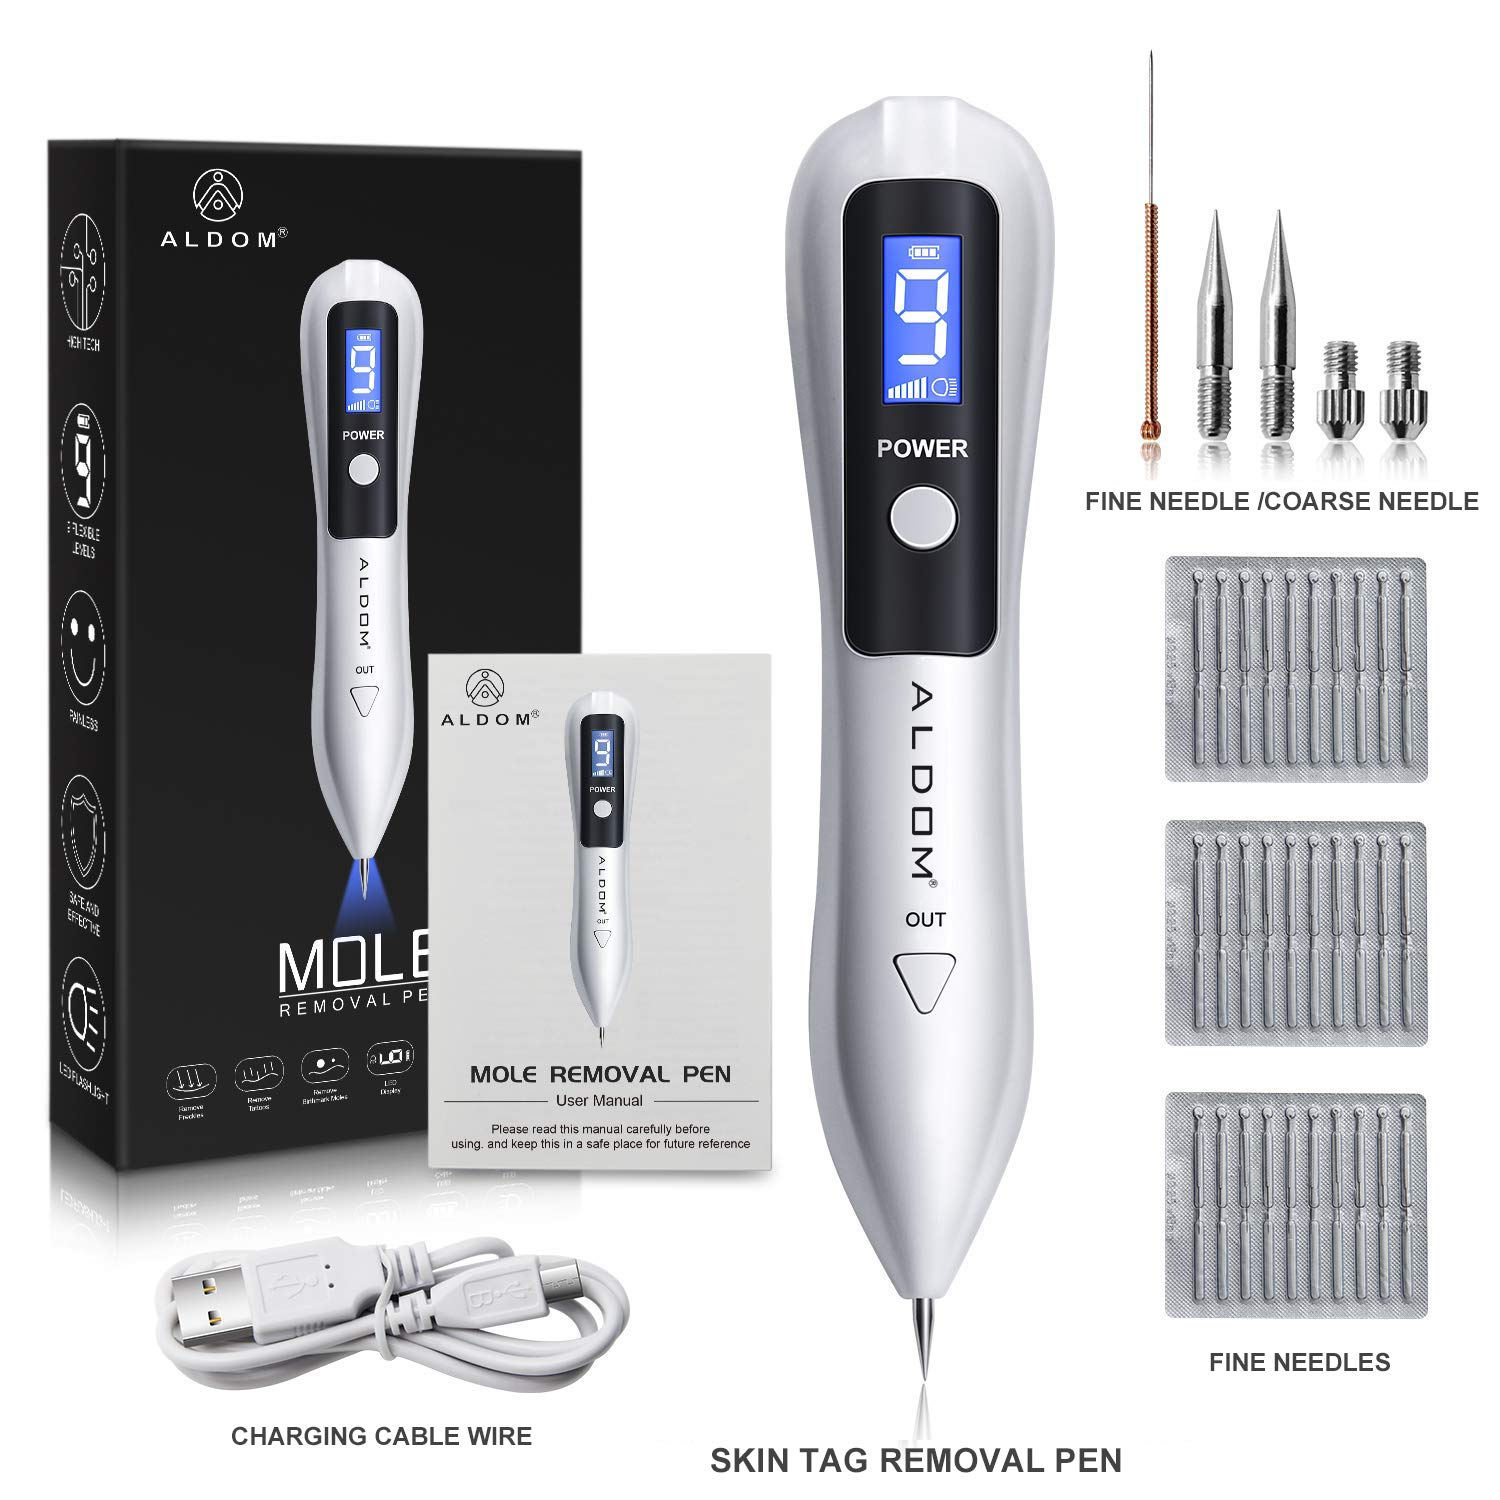 ALDOM Skin Tag Repair Kit 9 Speed Adjustable Skin Tag for Tattoo Freckle Professional Beauty Equipment with Replaceable Needle Home USB Charging LCD Screen